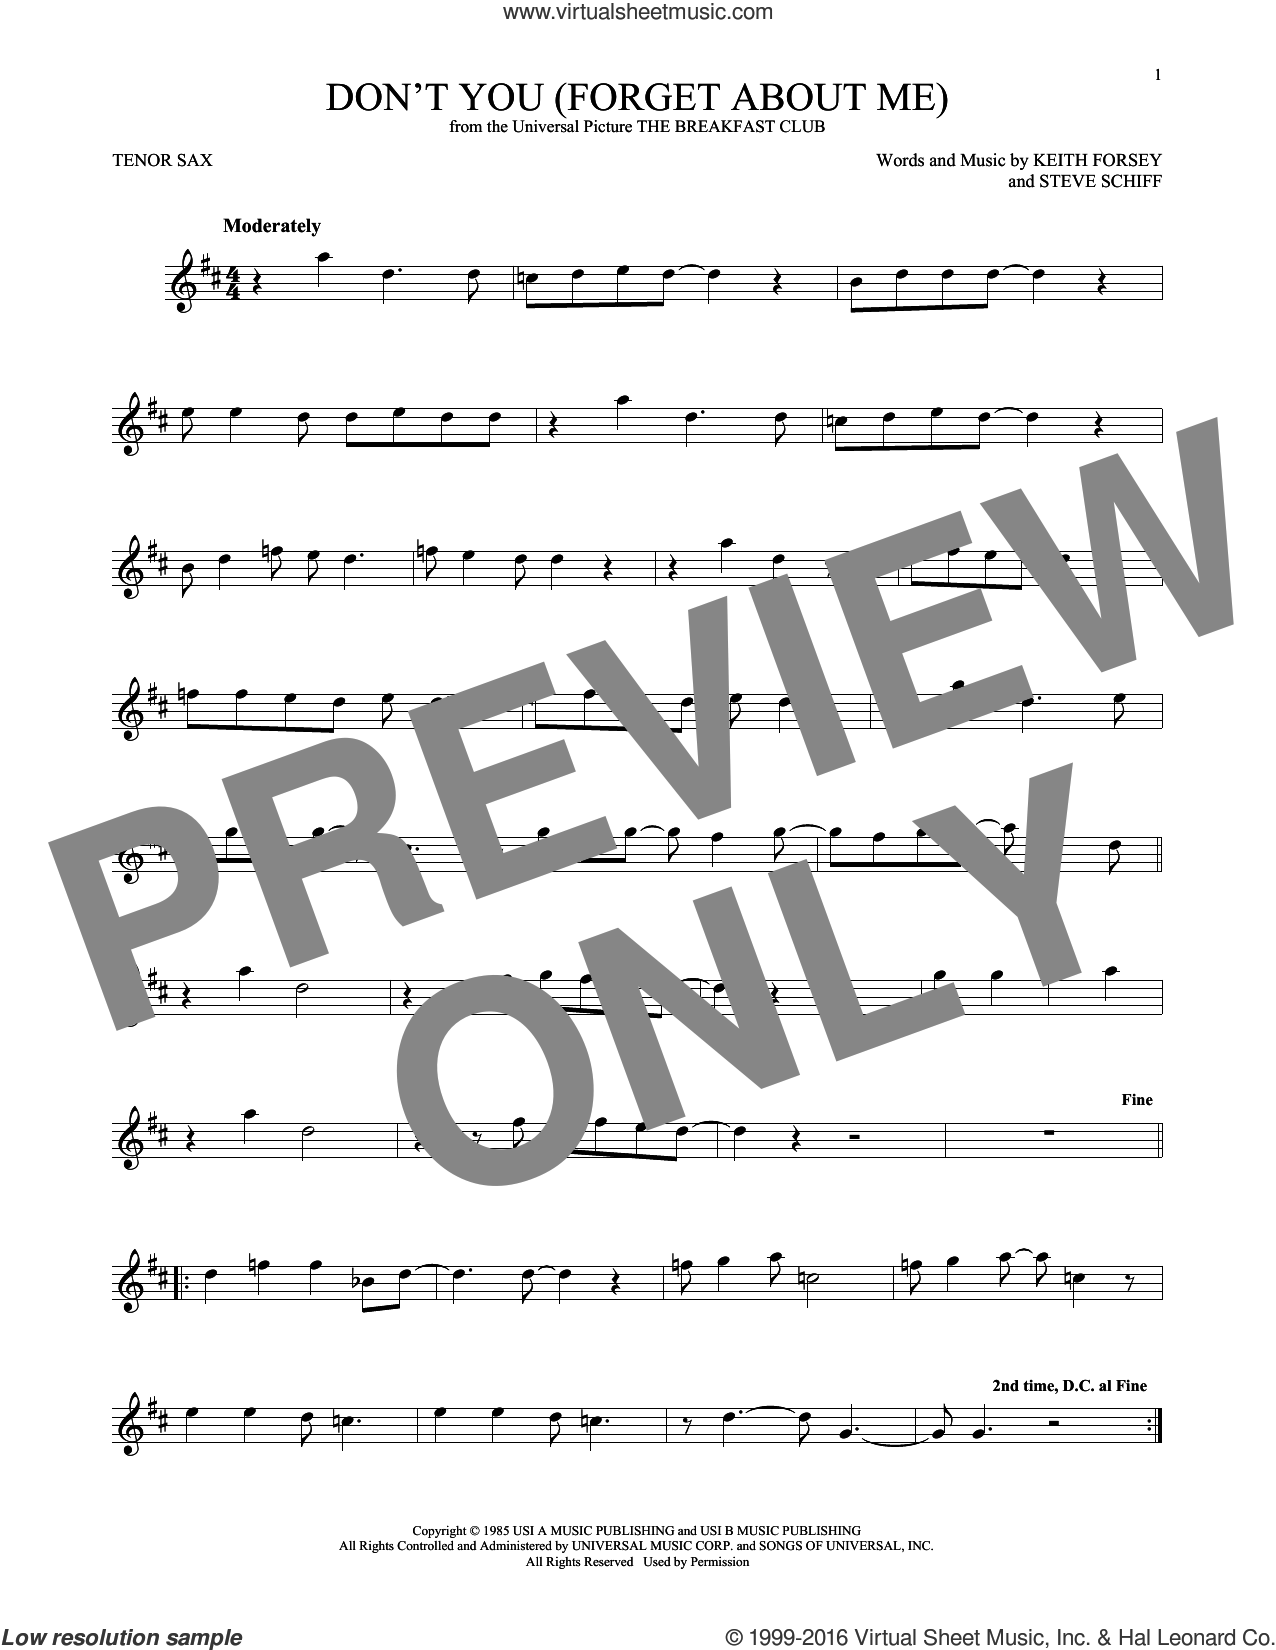 Don't You (Forget About Me) sheet music for tenor saxophone solo ( Sax) by Simple Minds, Hawk Nelson and Keith Forsey, intermediate tenor saxophone ( Sax). Score Image Preview.